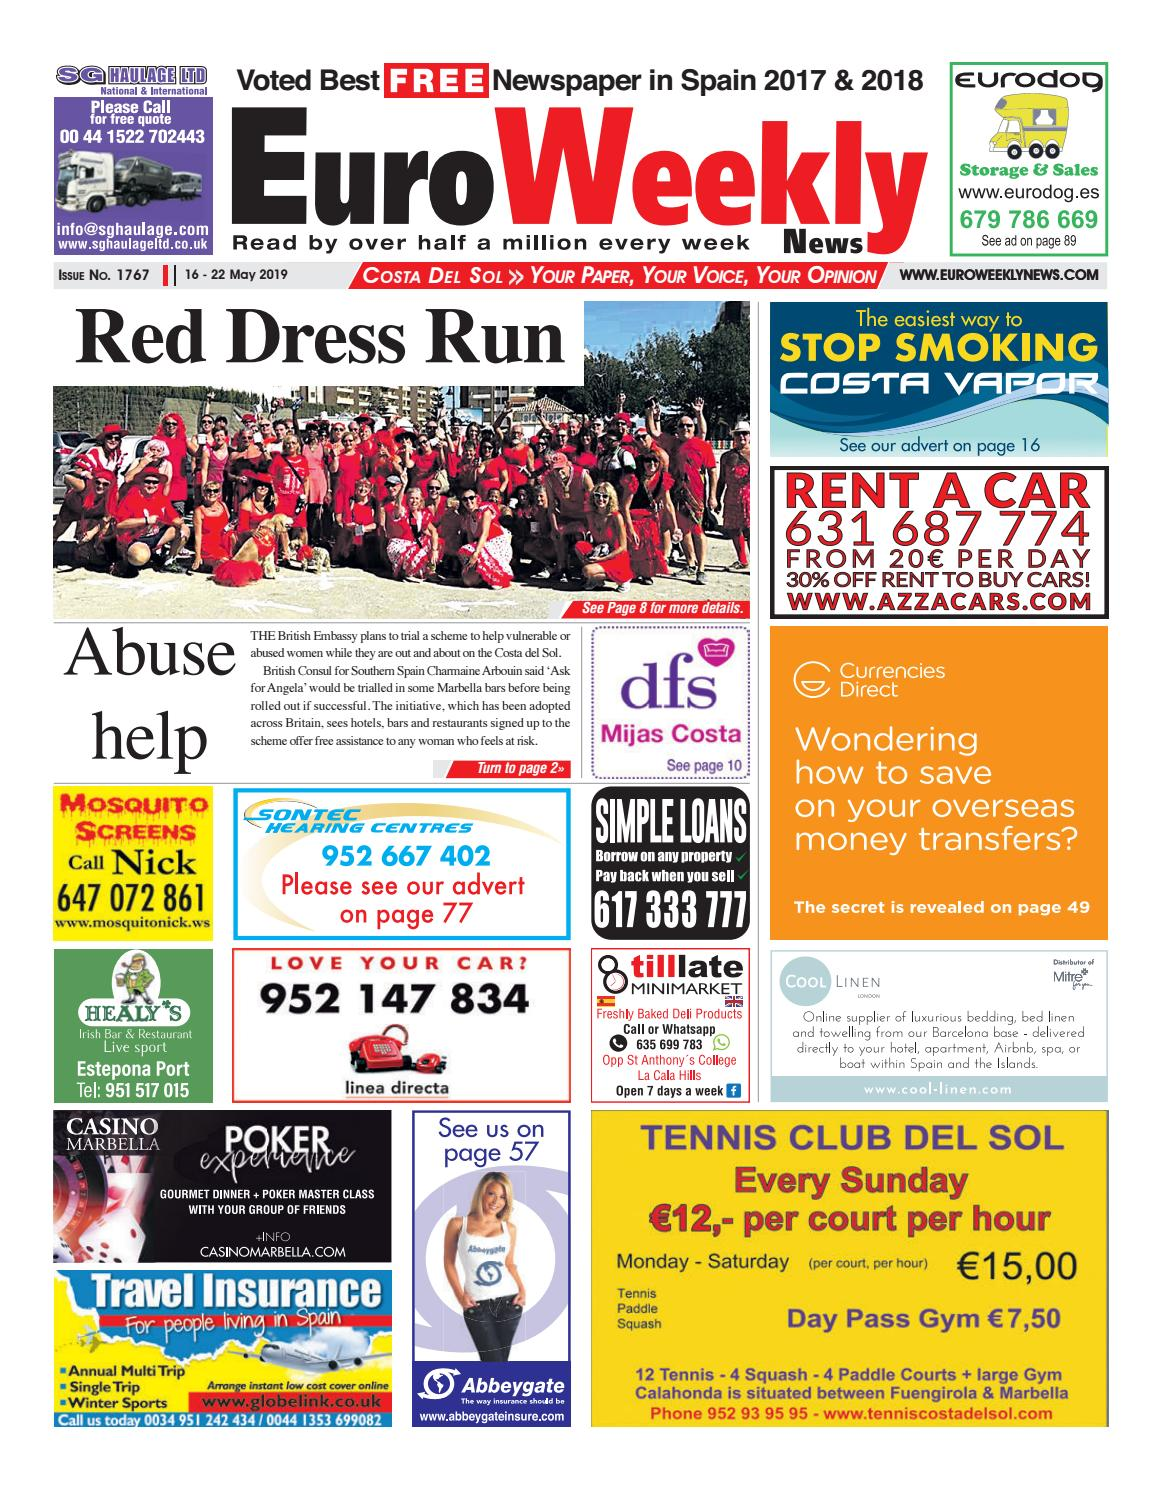 Euro Weekly News - Costa del Sol 16 - 22 May 2019 Issue 1767 by Euro